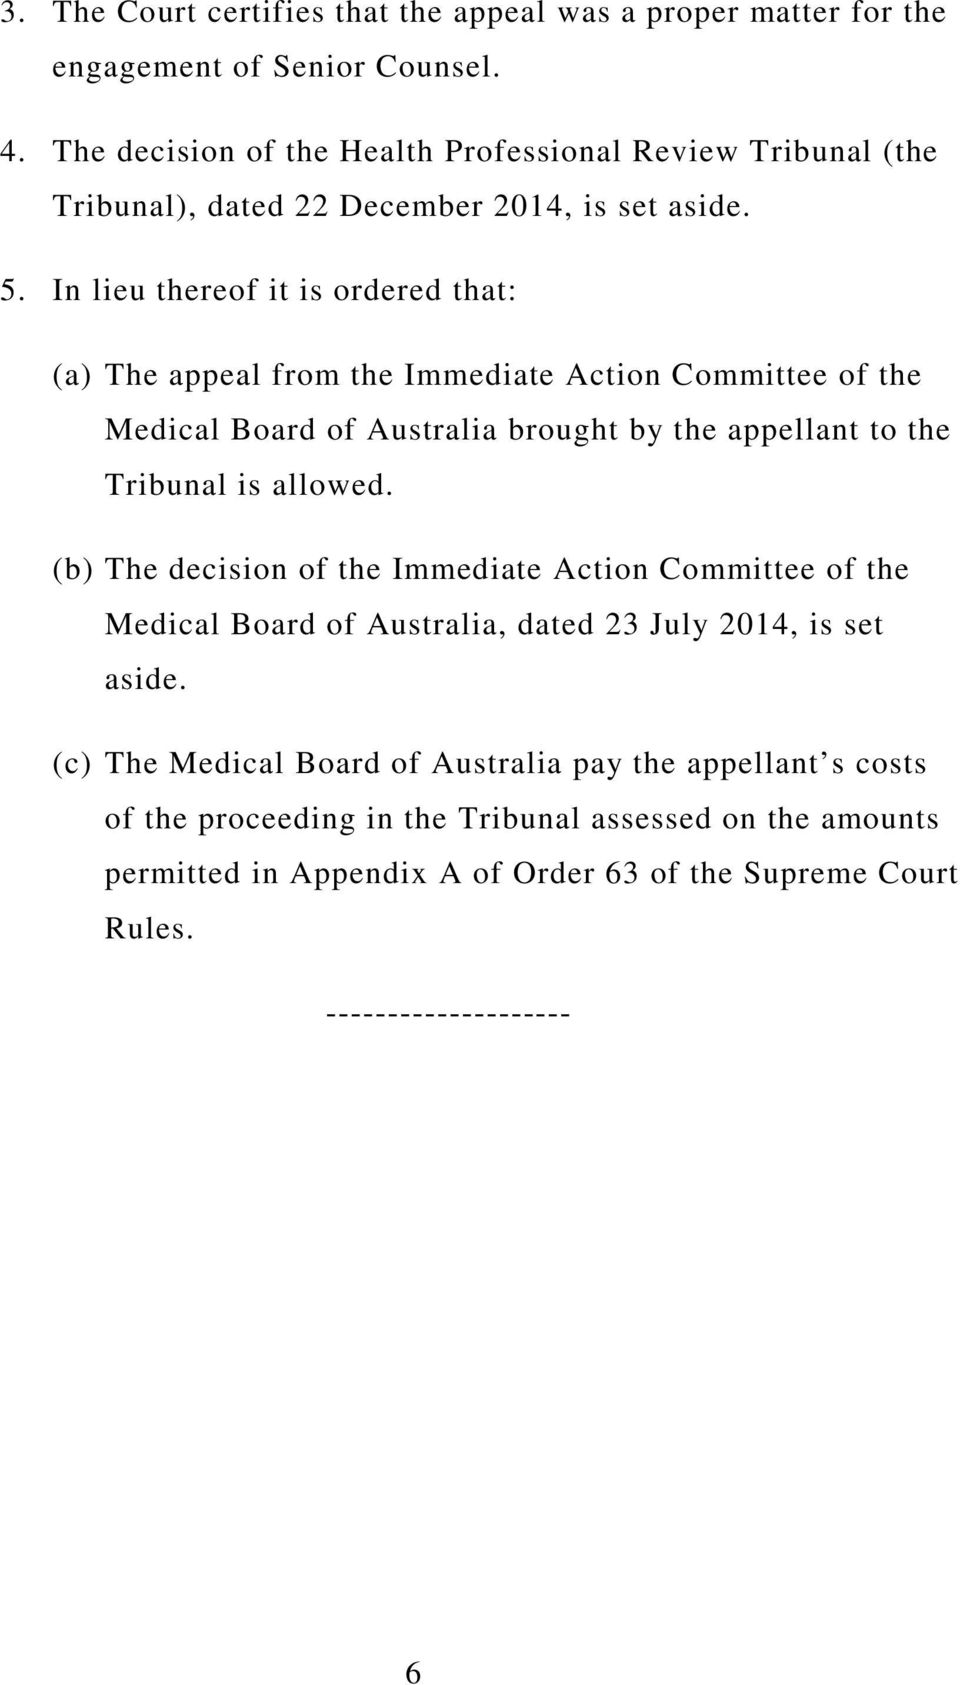 In lieu thereof it is ordered that: (a) The appeal from the Immediate Action Committee of the Medical Board of Australia brought by the appellant to the Tribunal is allowed.